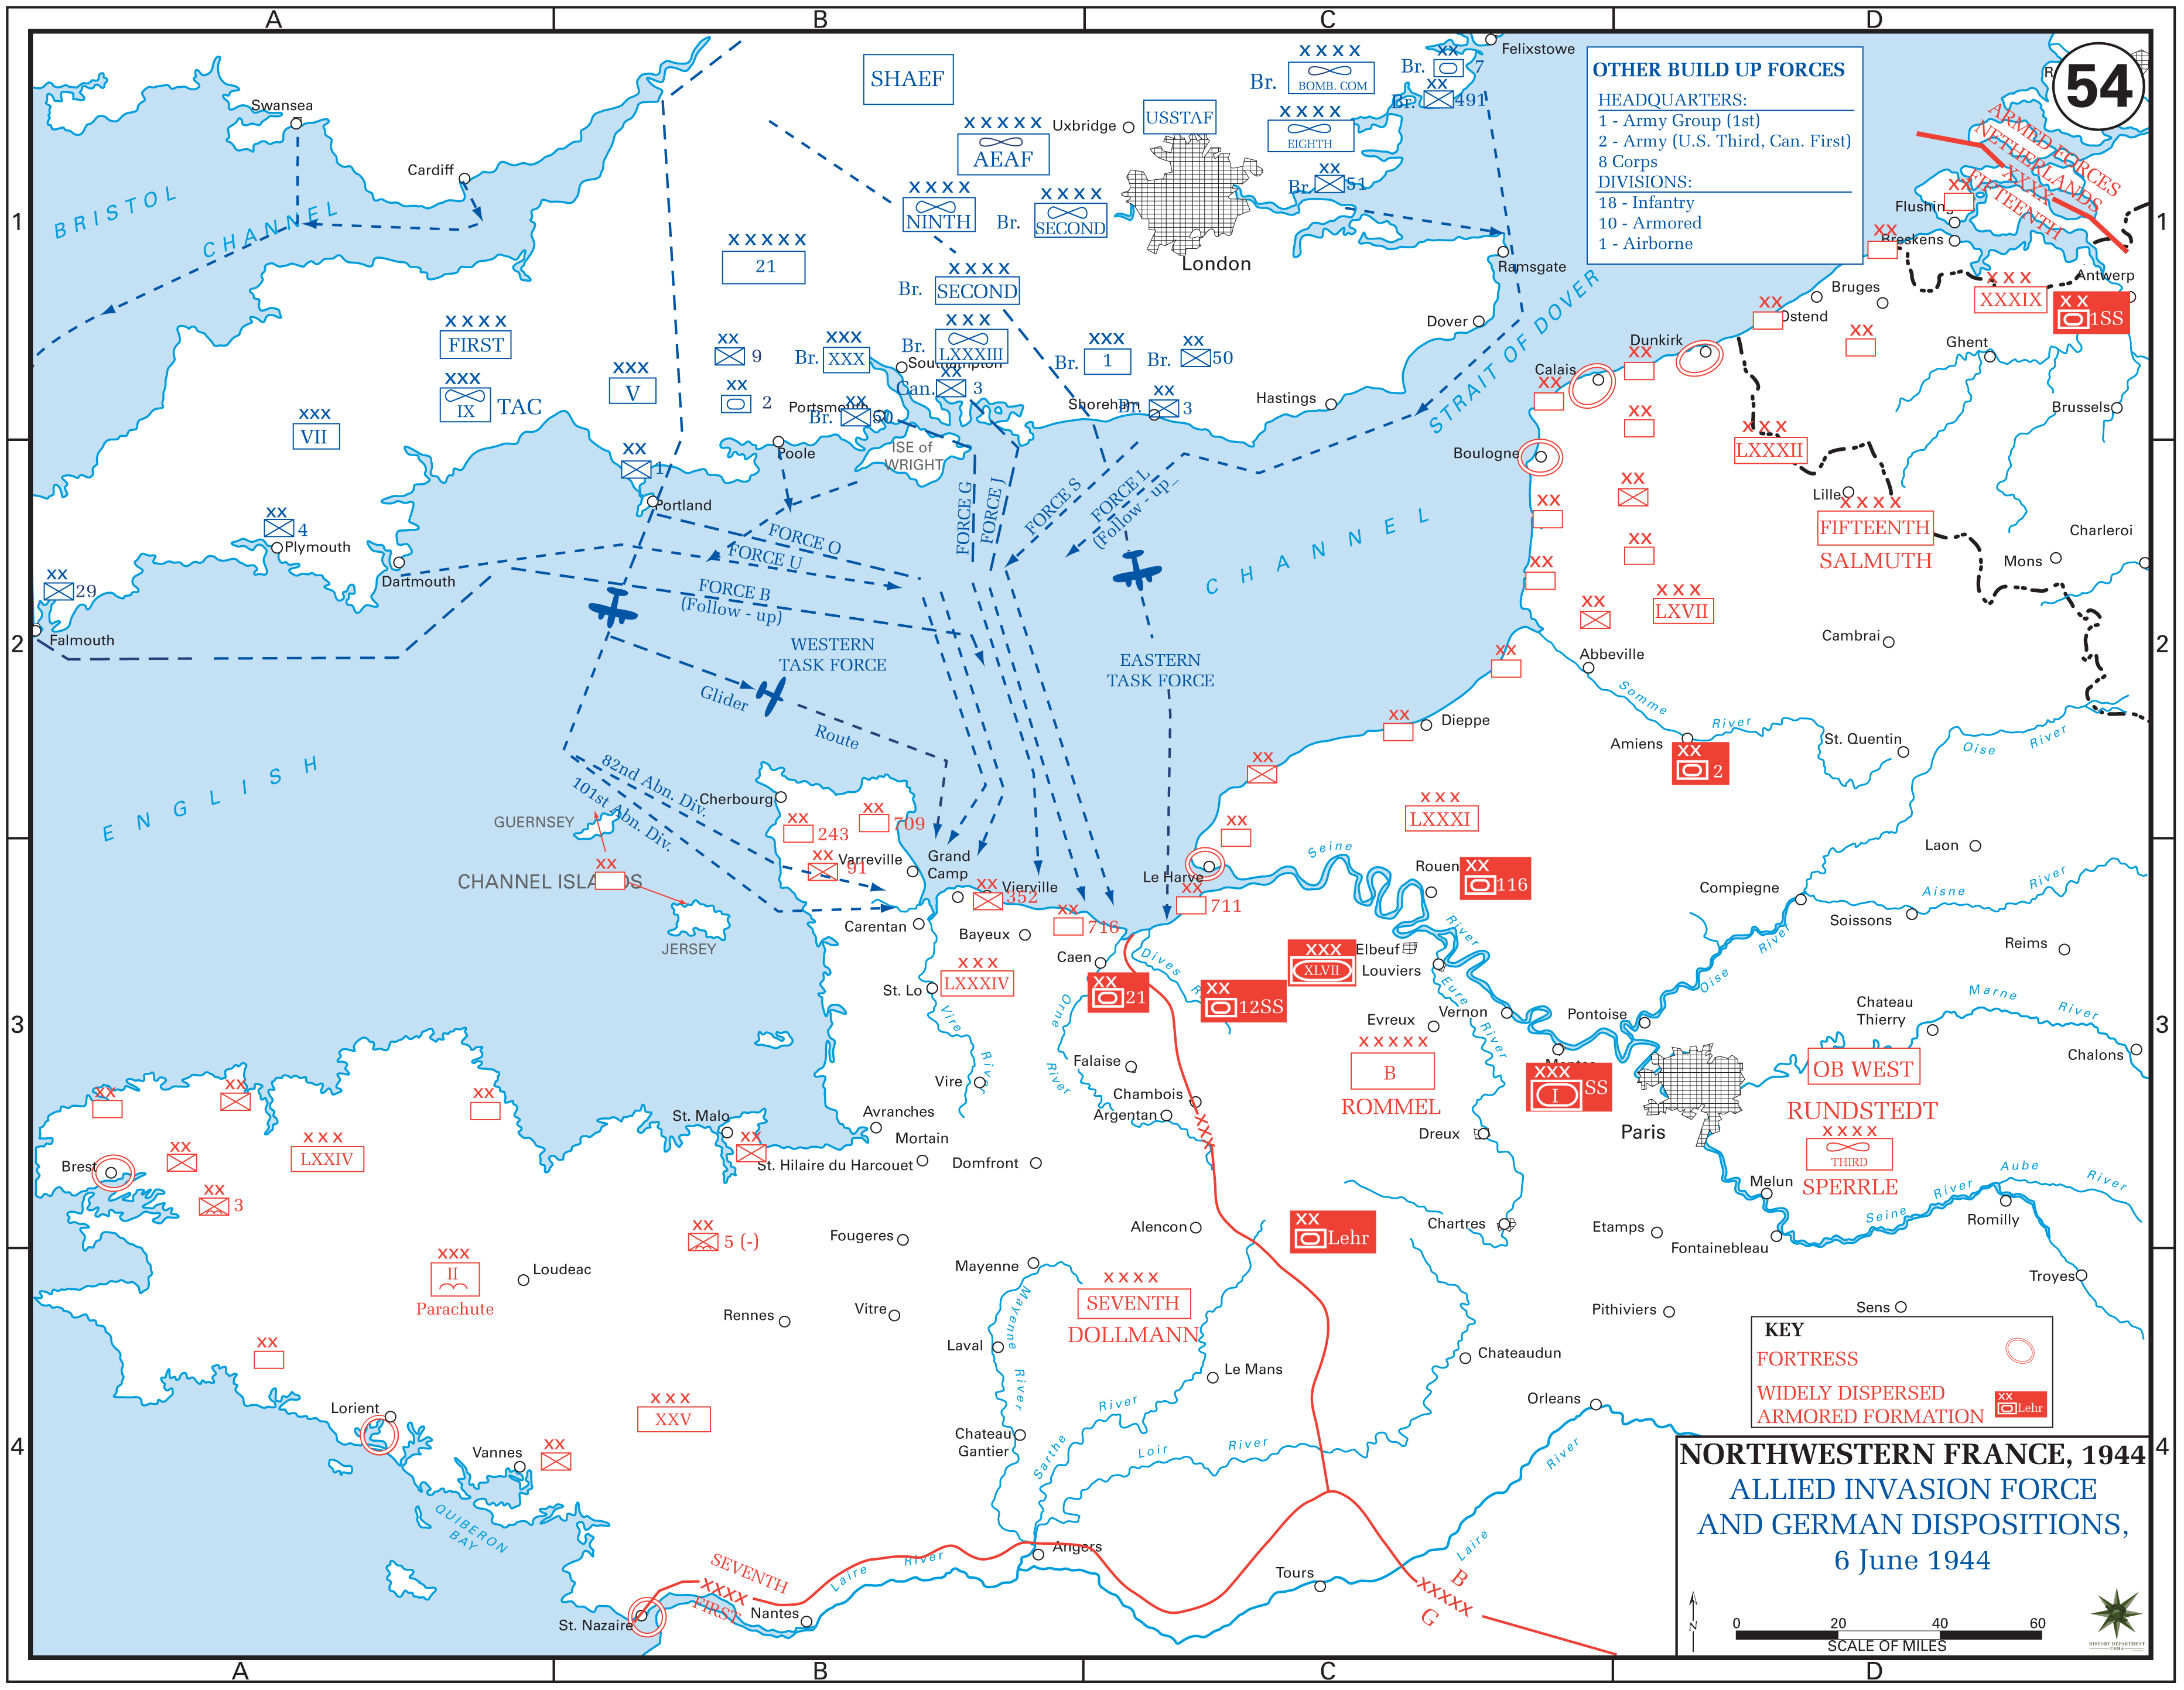 Routes used to cross the English Channel and landing points in Normandy